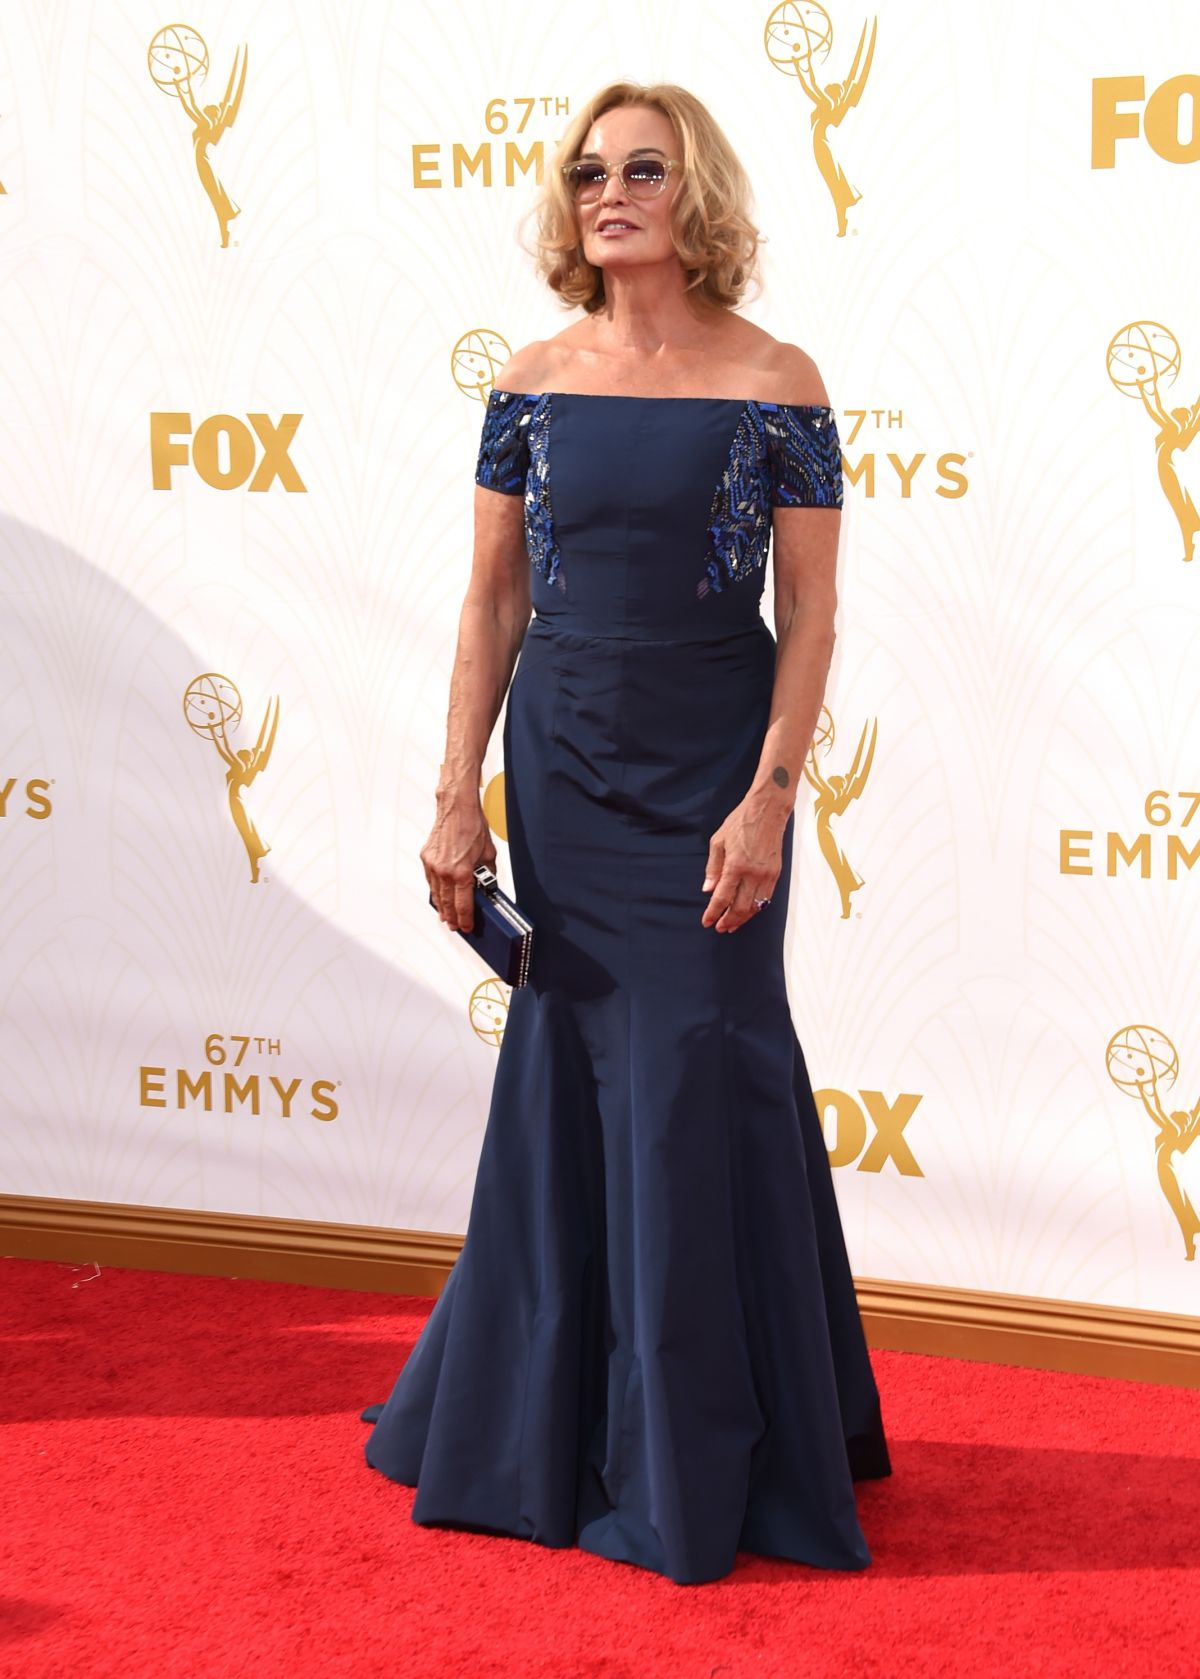 JESSICA LANGE at 2015 Emmy Awards in Los Angeles 09/20/2015